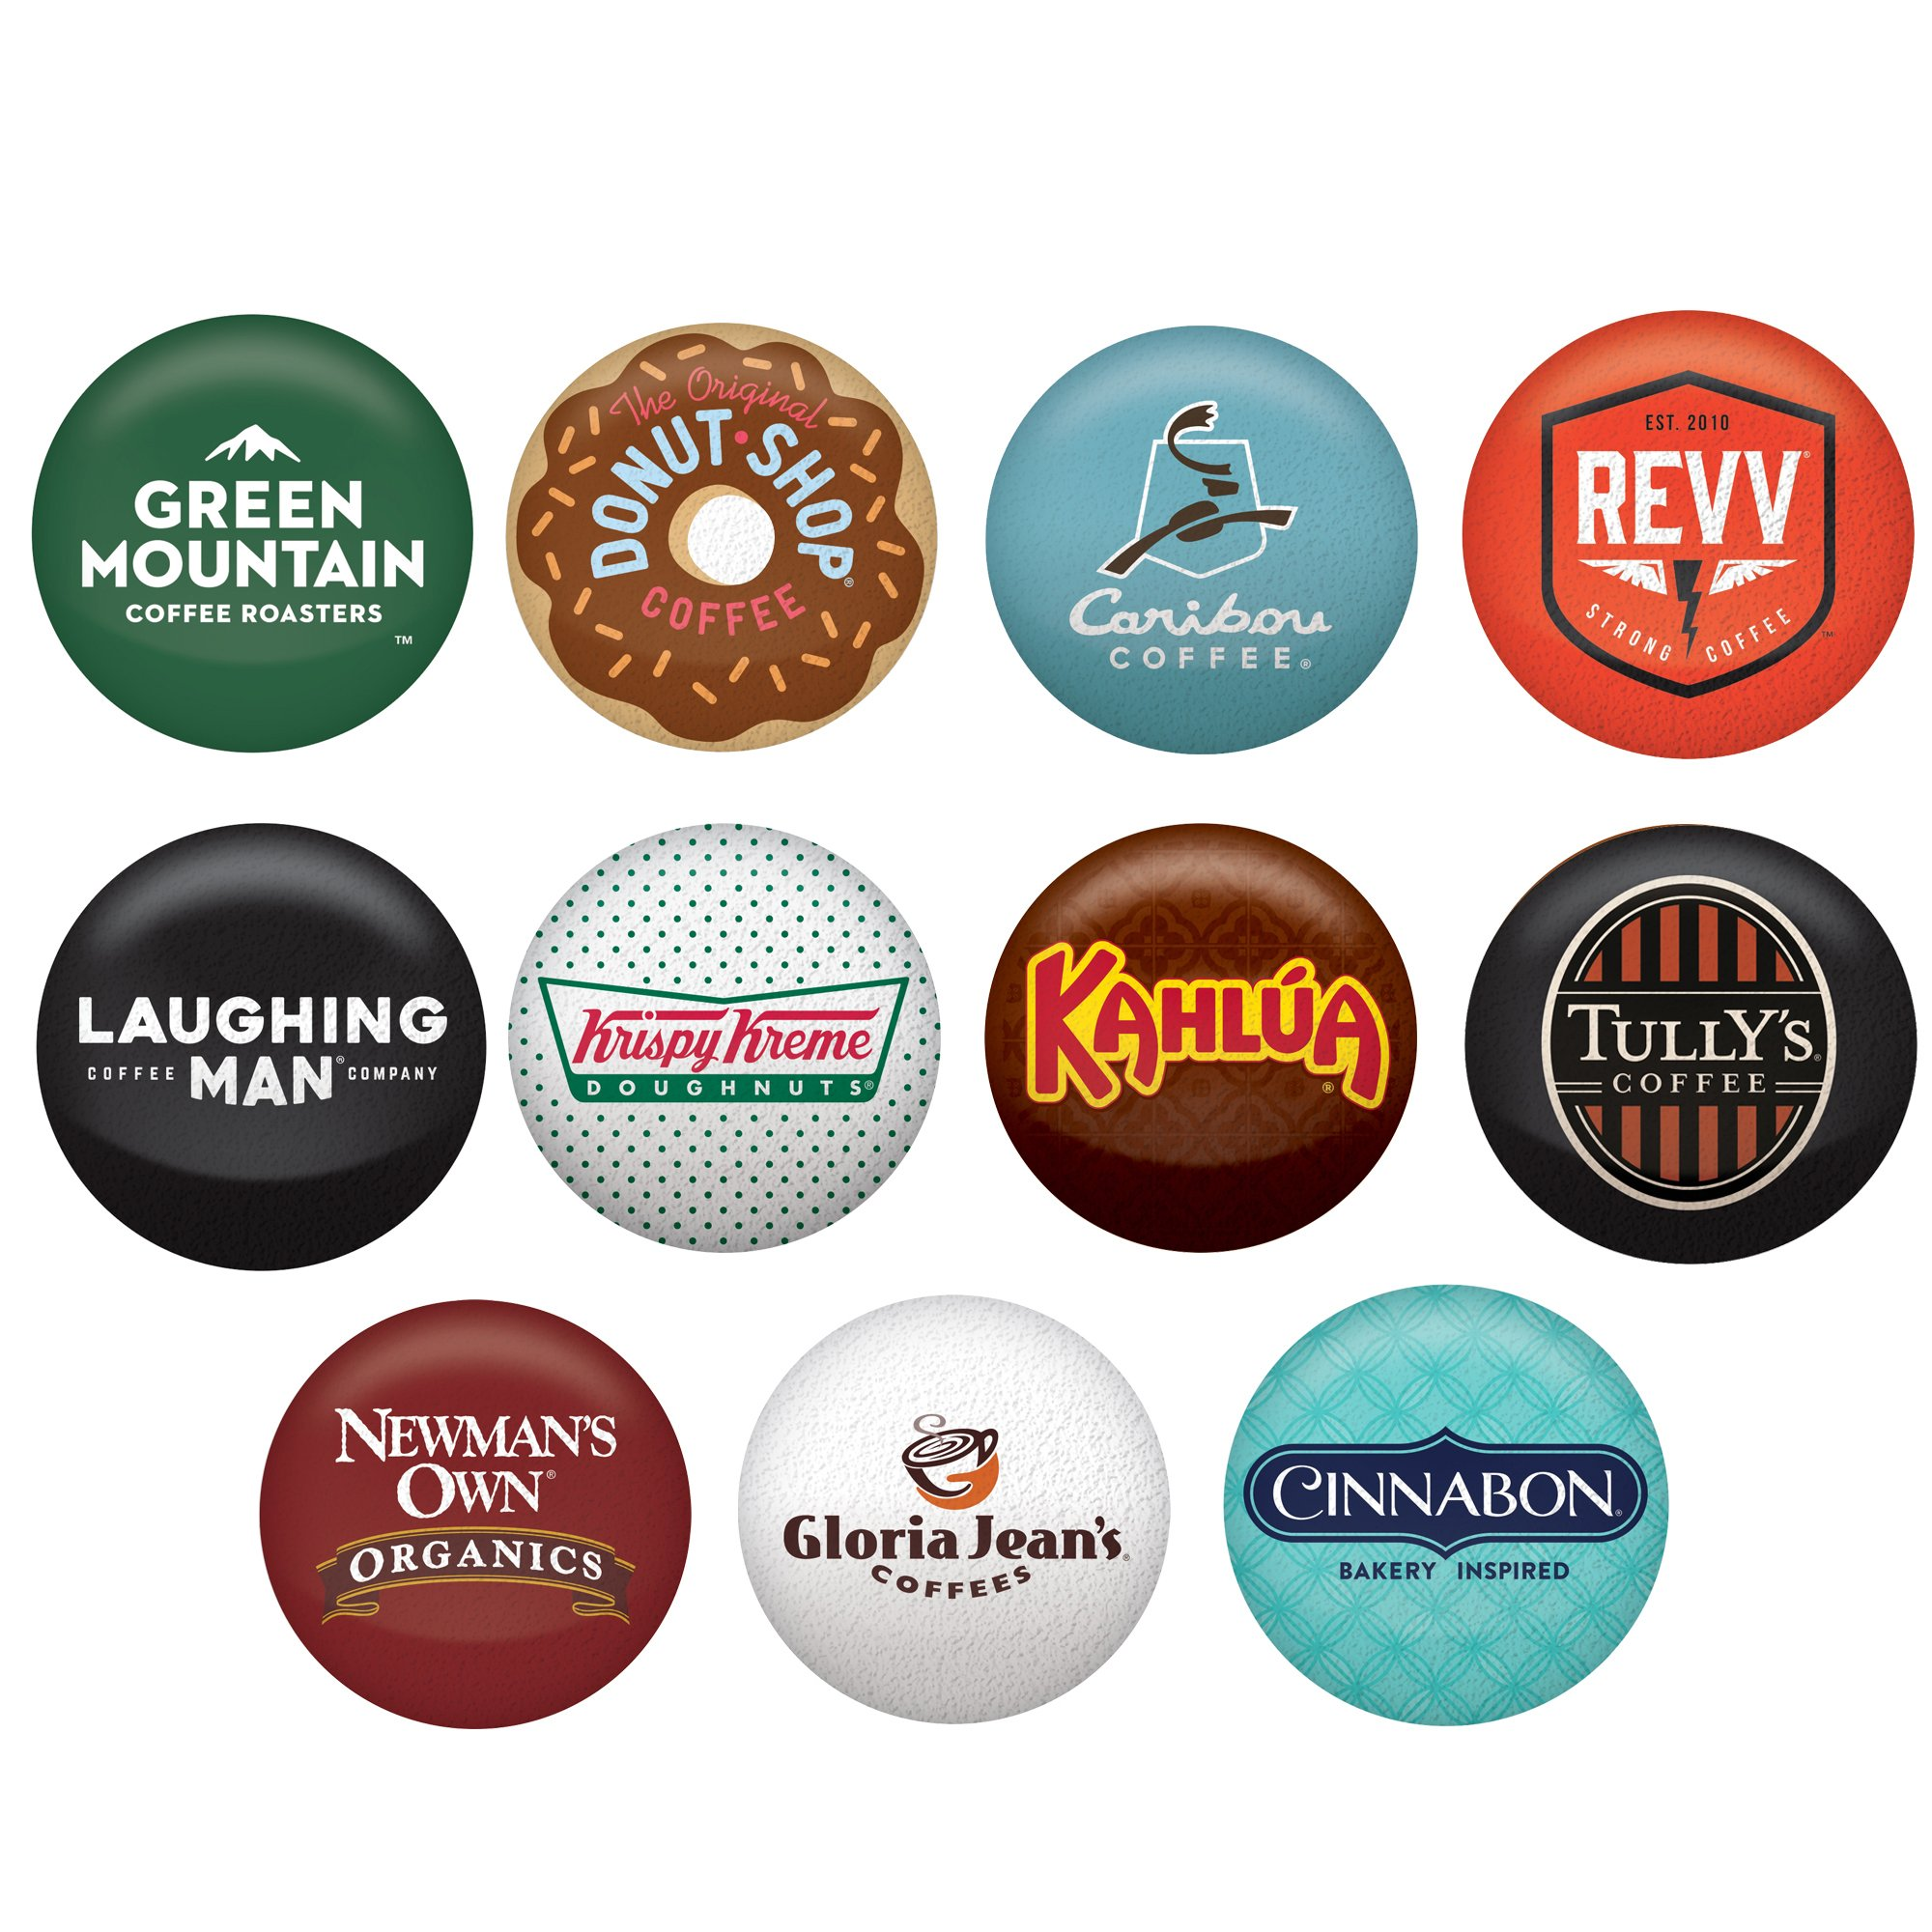 Keurig Coffee Lovers' Collection Sampler Pack, Single Serve K-Cup Pods, Compatible with all Keurig 1.0/Classic, 2.0 and K-Café Coffee Makers, Variety Pack, 40 Count by Variety Packs (Image #2)